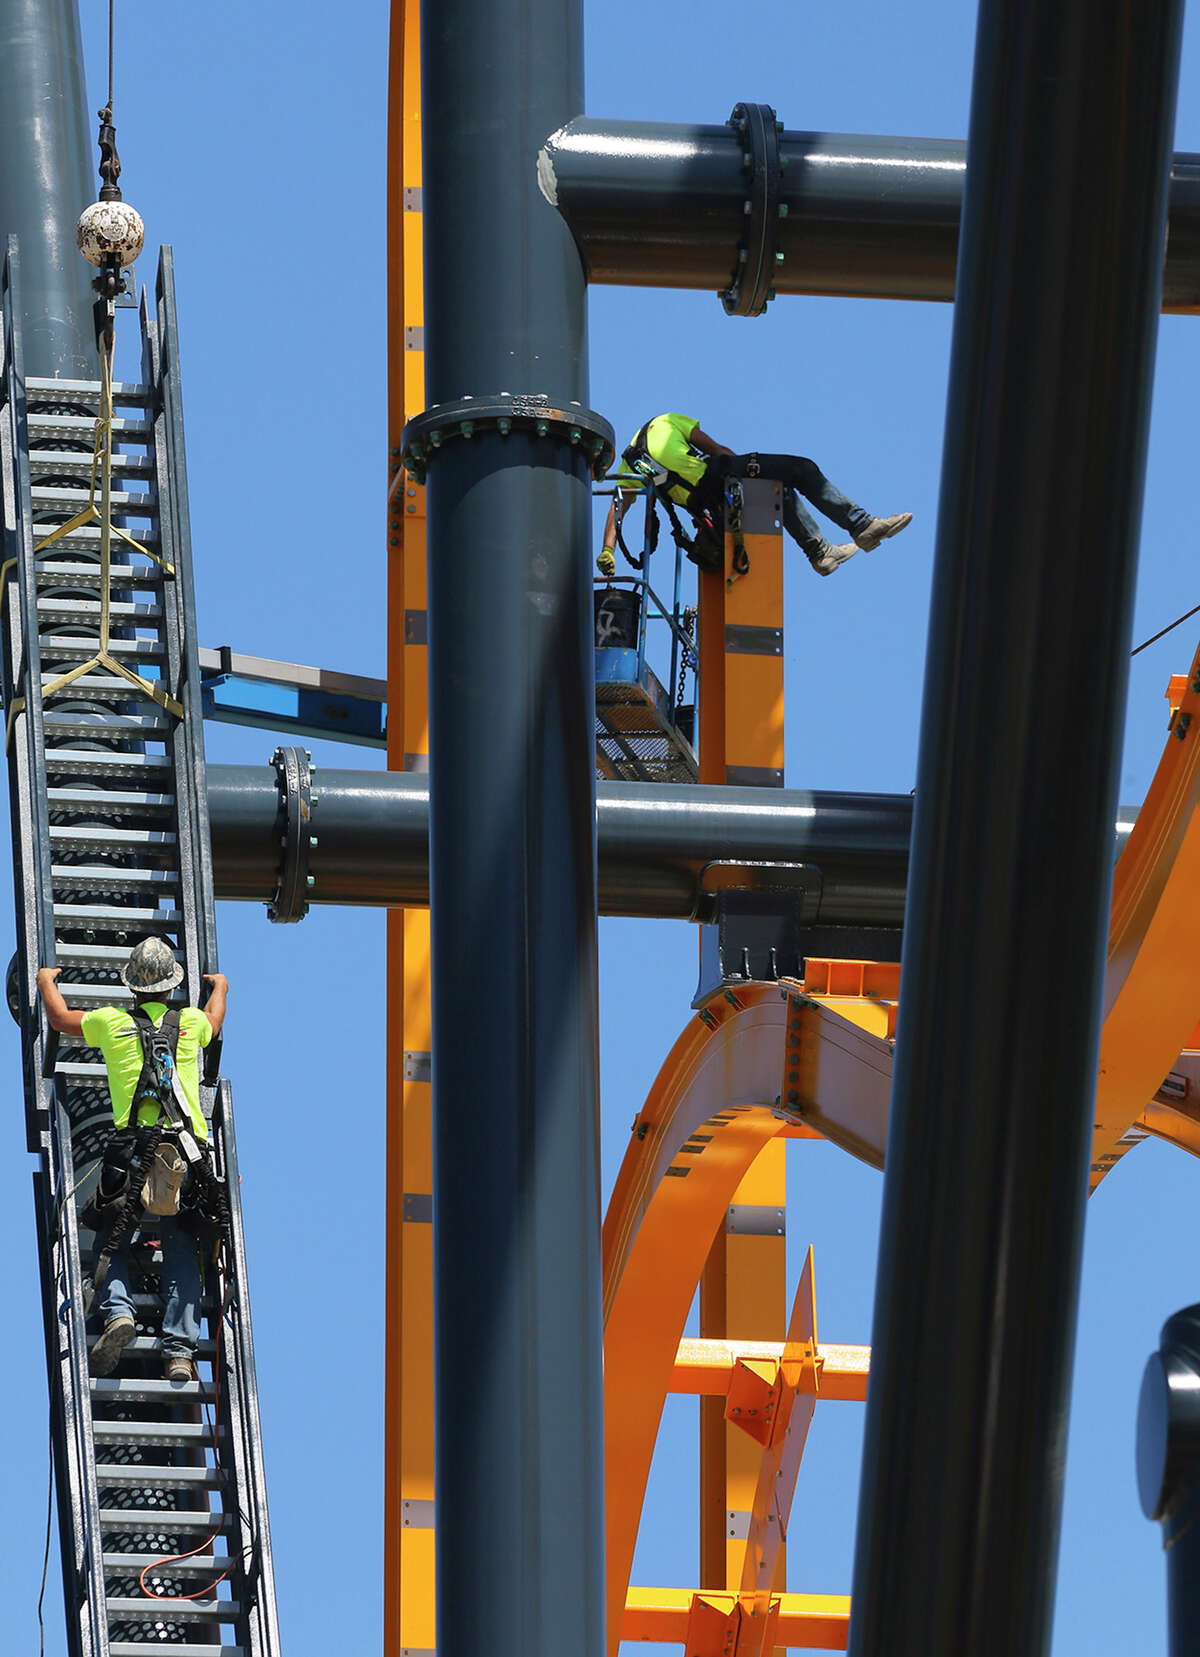 A piece of stairwell (left) is hoisted into place Wednesday March 25, 2015 on a new roller coaster ride at Six Flags Fiesta Texas. The roller coaster, called BATMAN: The Ride, is known as a 4D Wing coaster and lifts riders up 120 feet. Riders are flipped head-over-heels and will experience tumbling and unexpected drops along the way. The attraction is based on the Batman comic and offers immersion into the Batman storyline. The ride uses magnetic technology and has two beyond 90 degree drops giving the sensation of free-falling. The attraction has five vehicles with eight passengers each and will open in early summer 2015.